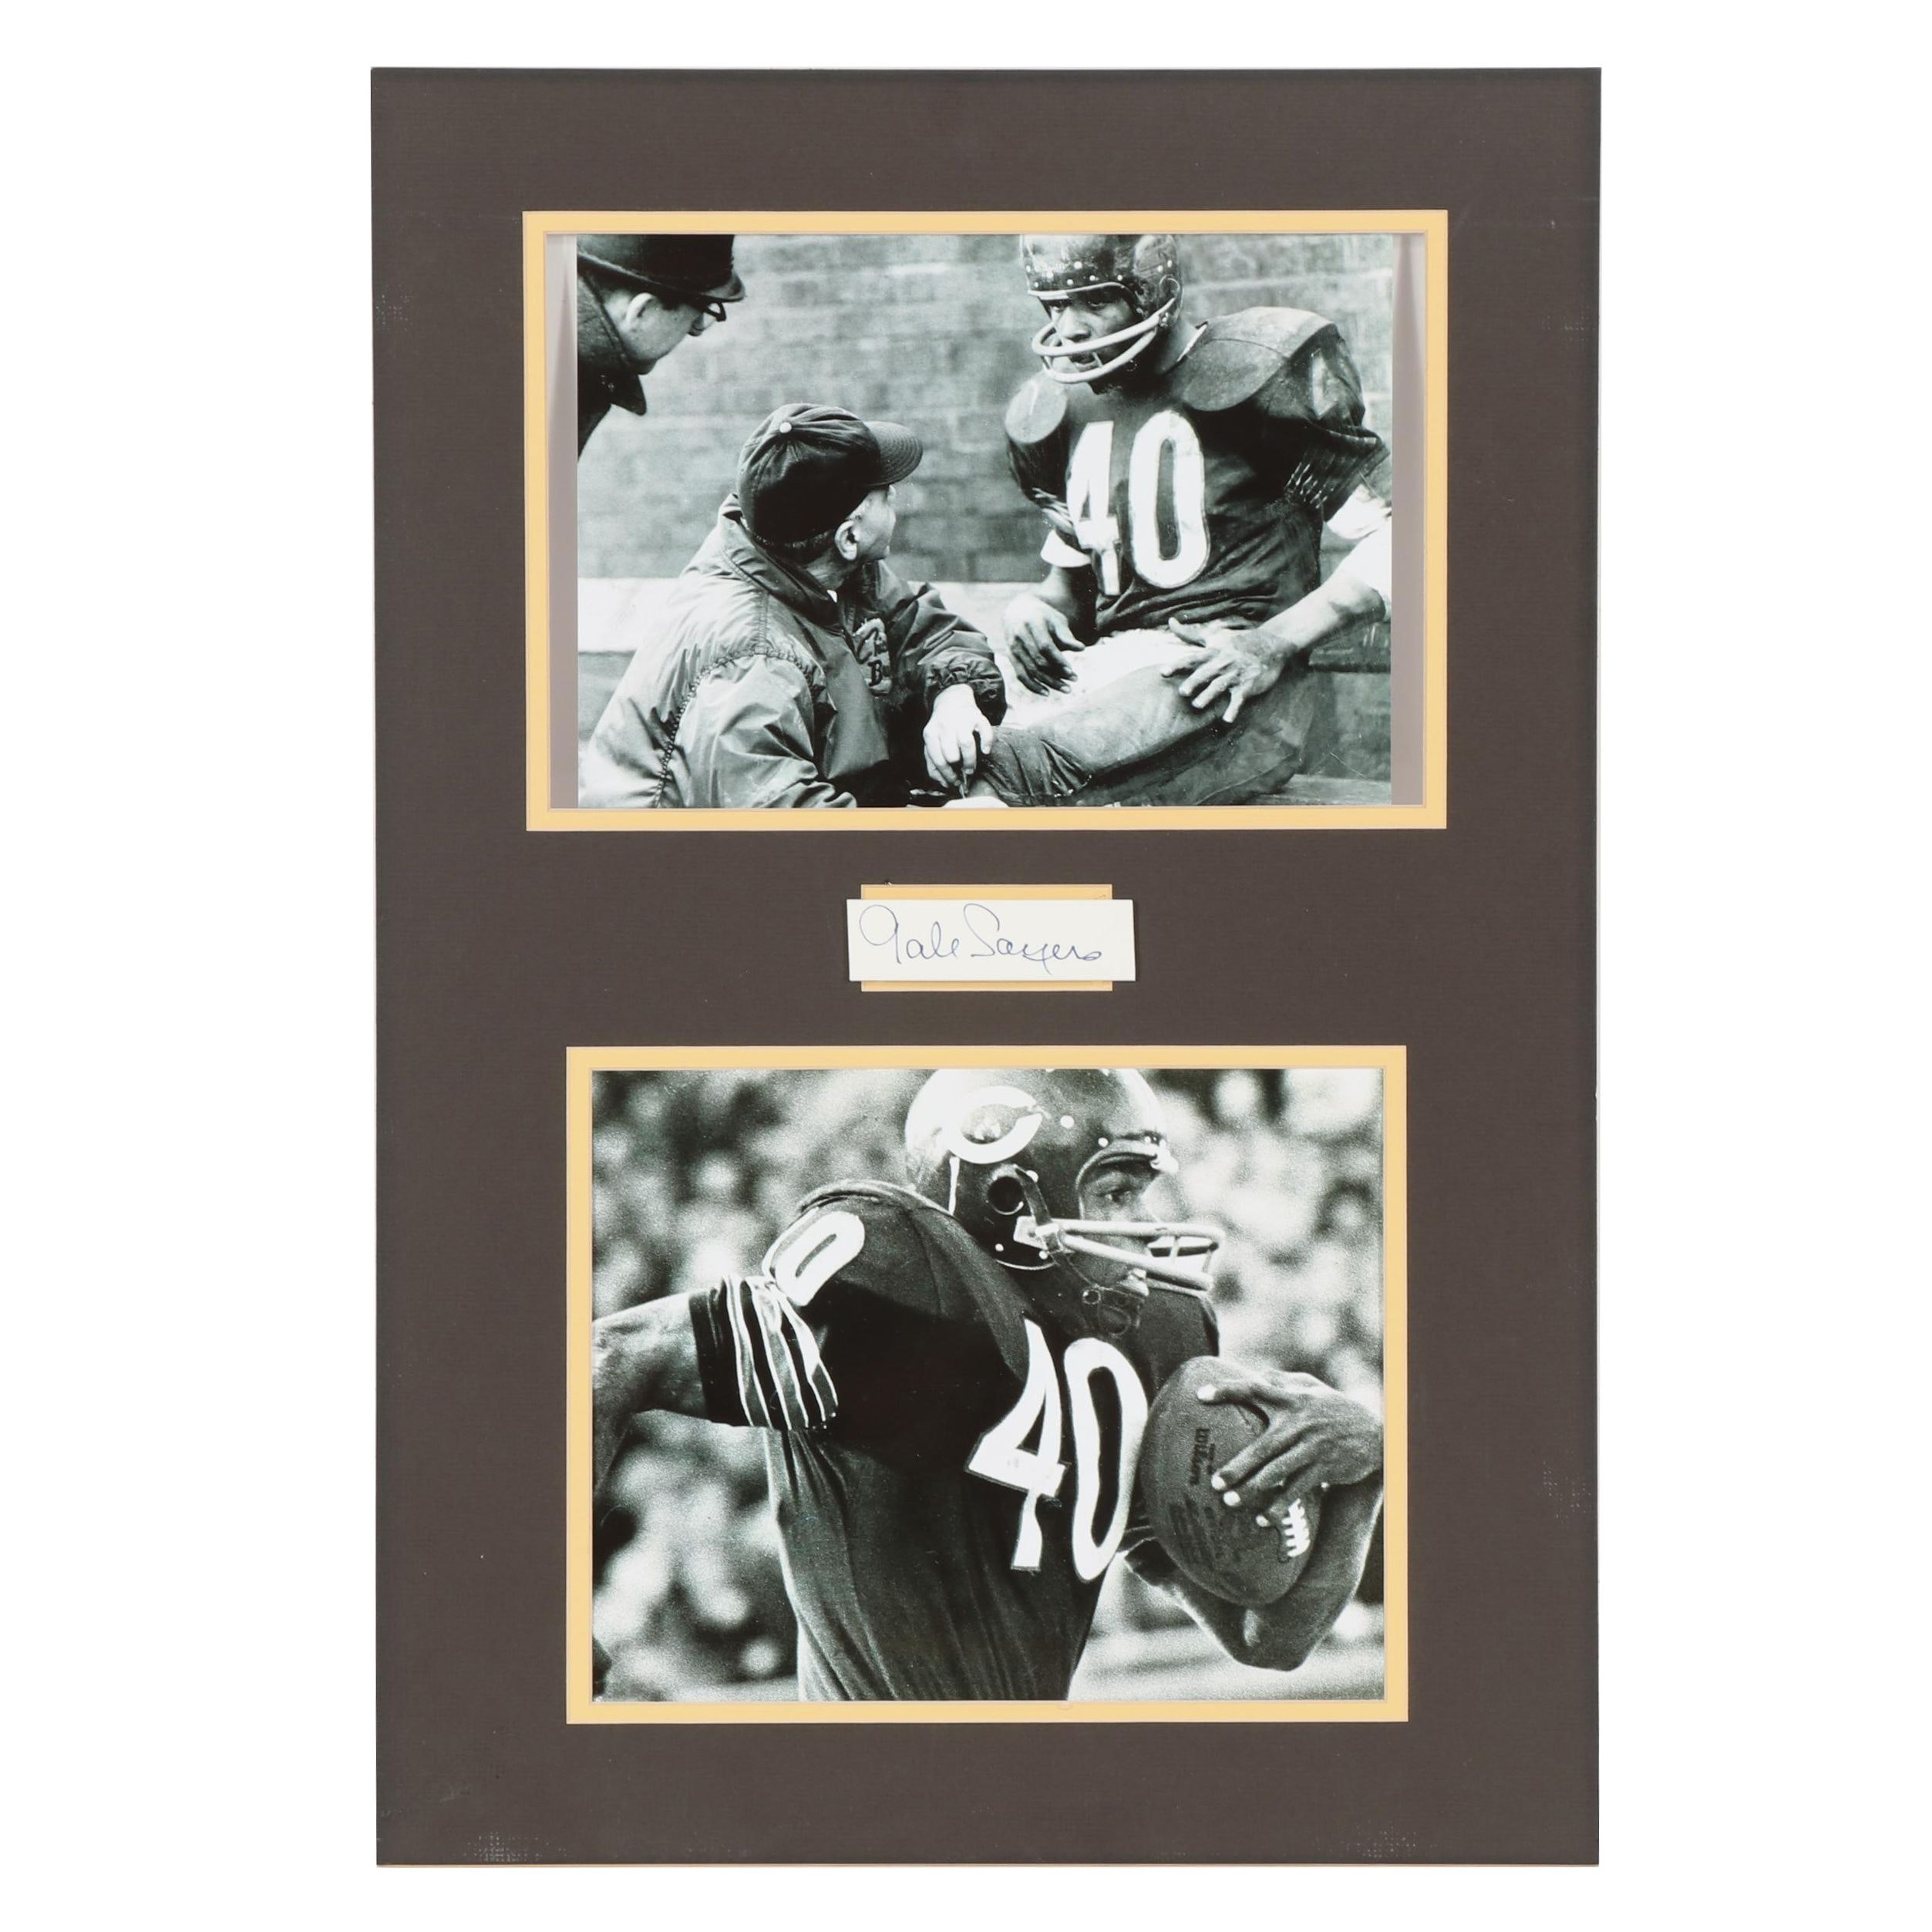 Gale Sayers Autographed Cut with Photos in Matted Display